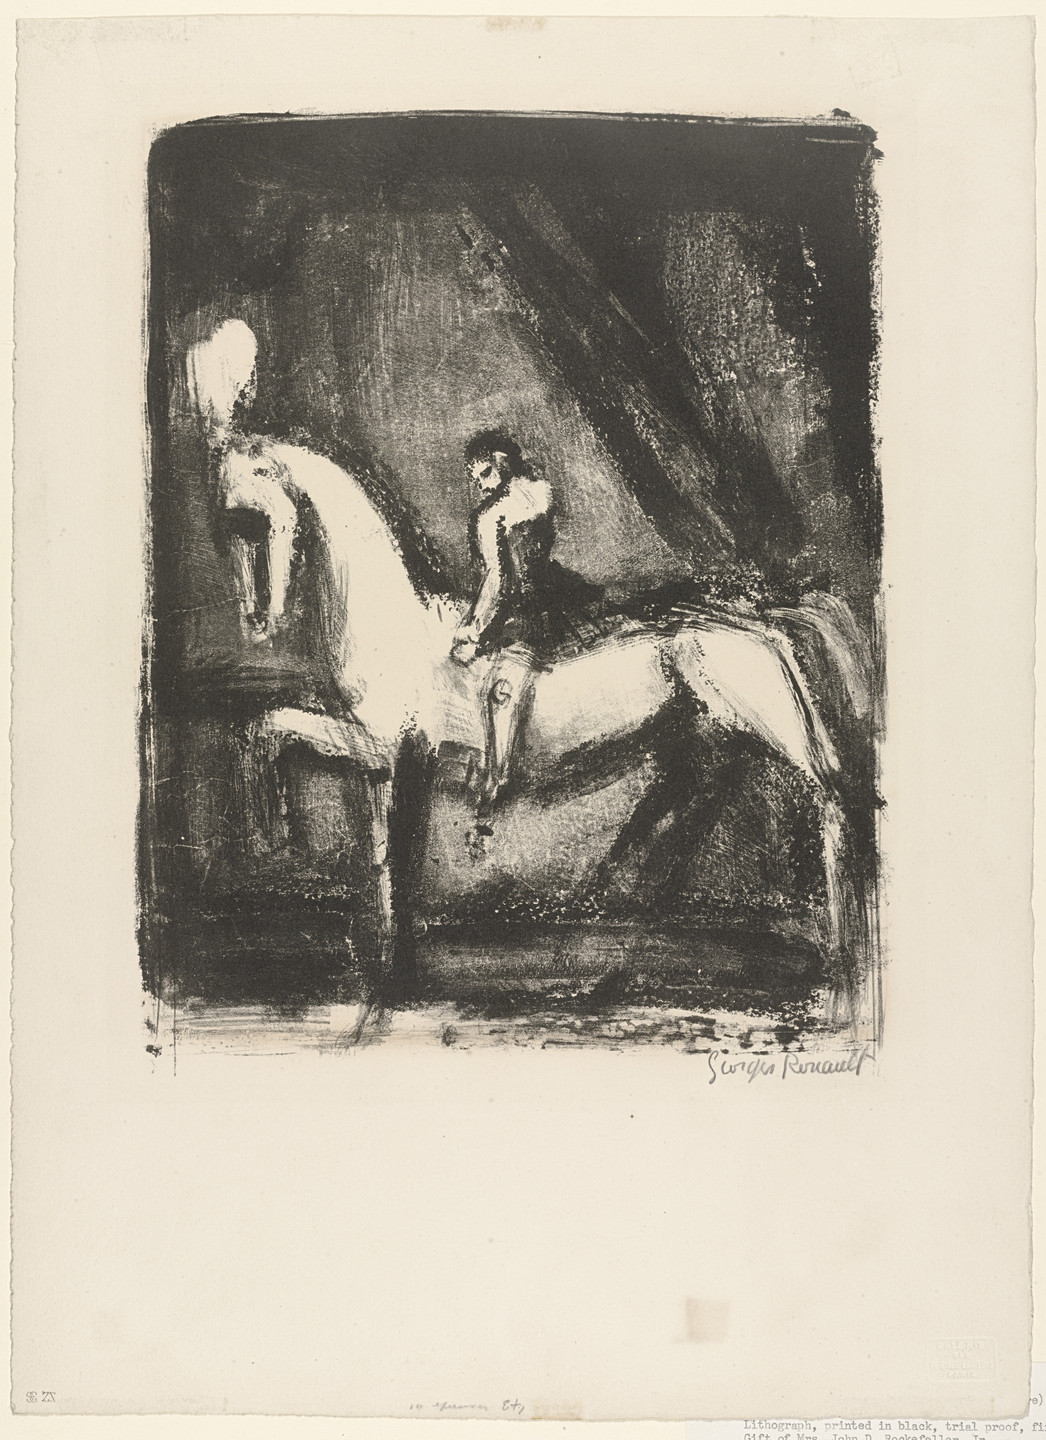 Georges Rouault. The Little Circus Rider (La Petite ecuyère). c. 1924-27